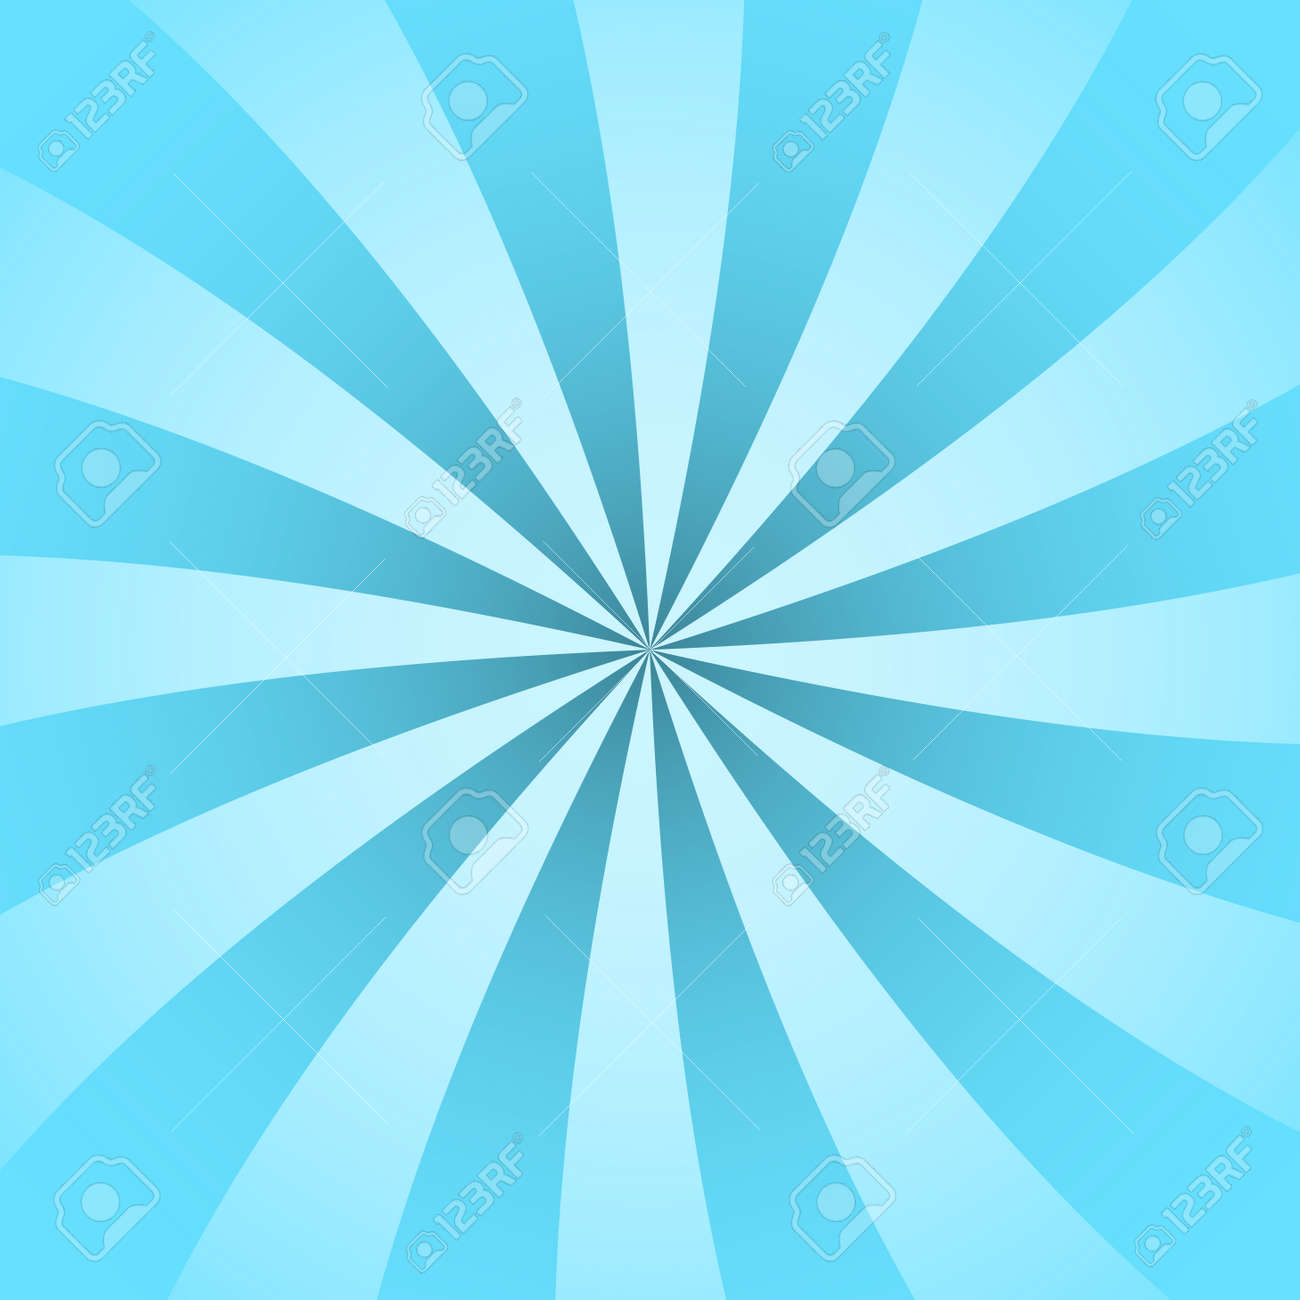 Blue Rays Poster Popular Ray Star Burst Background Television Vintage Dark And